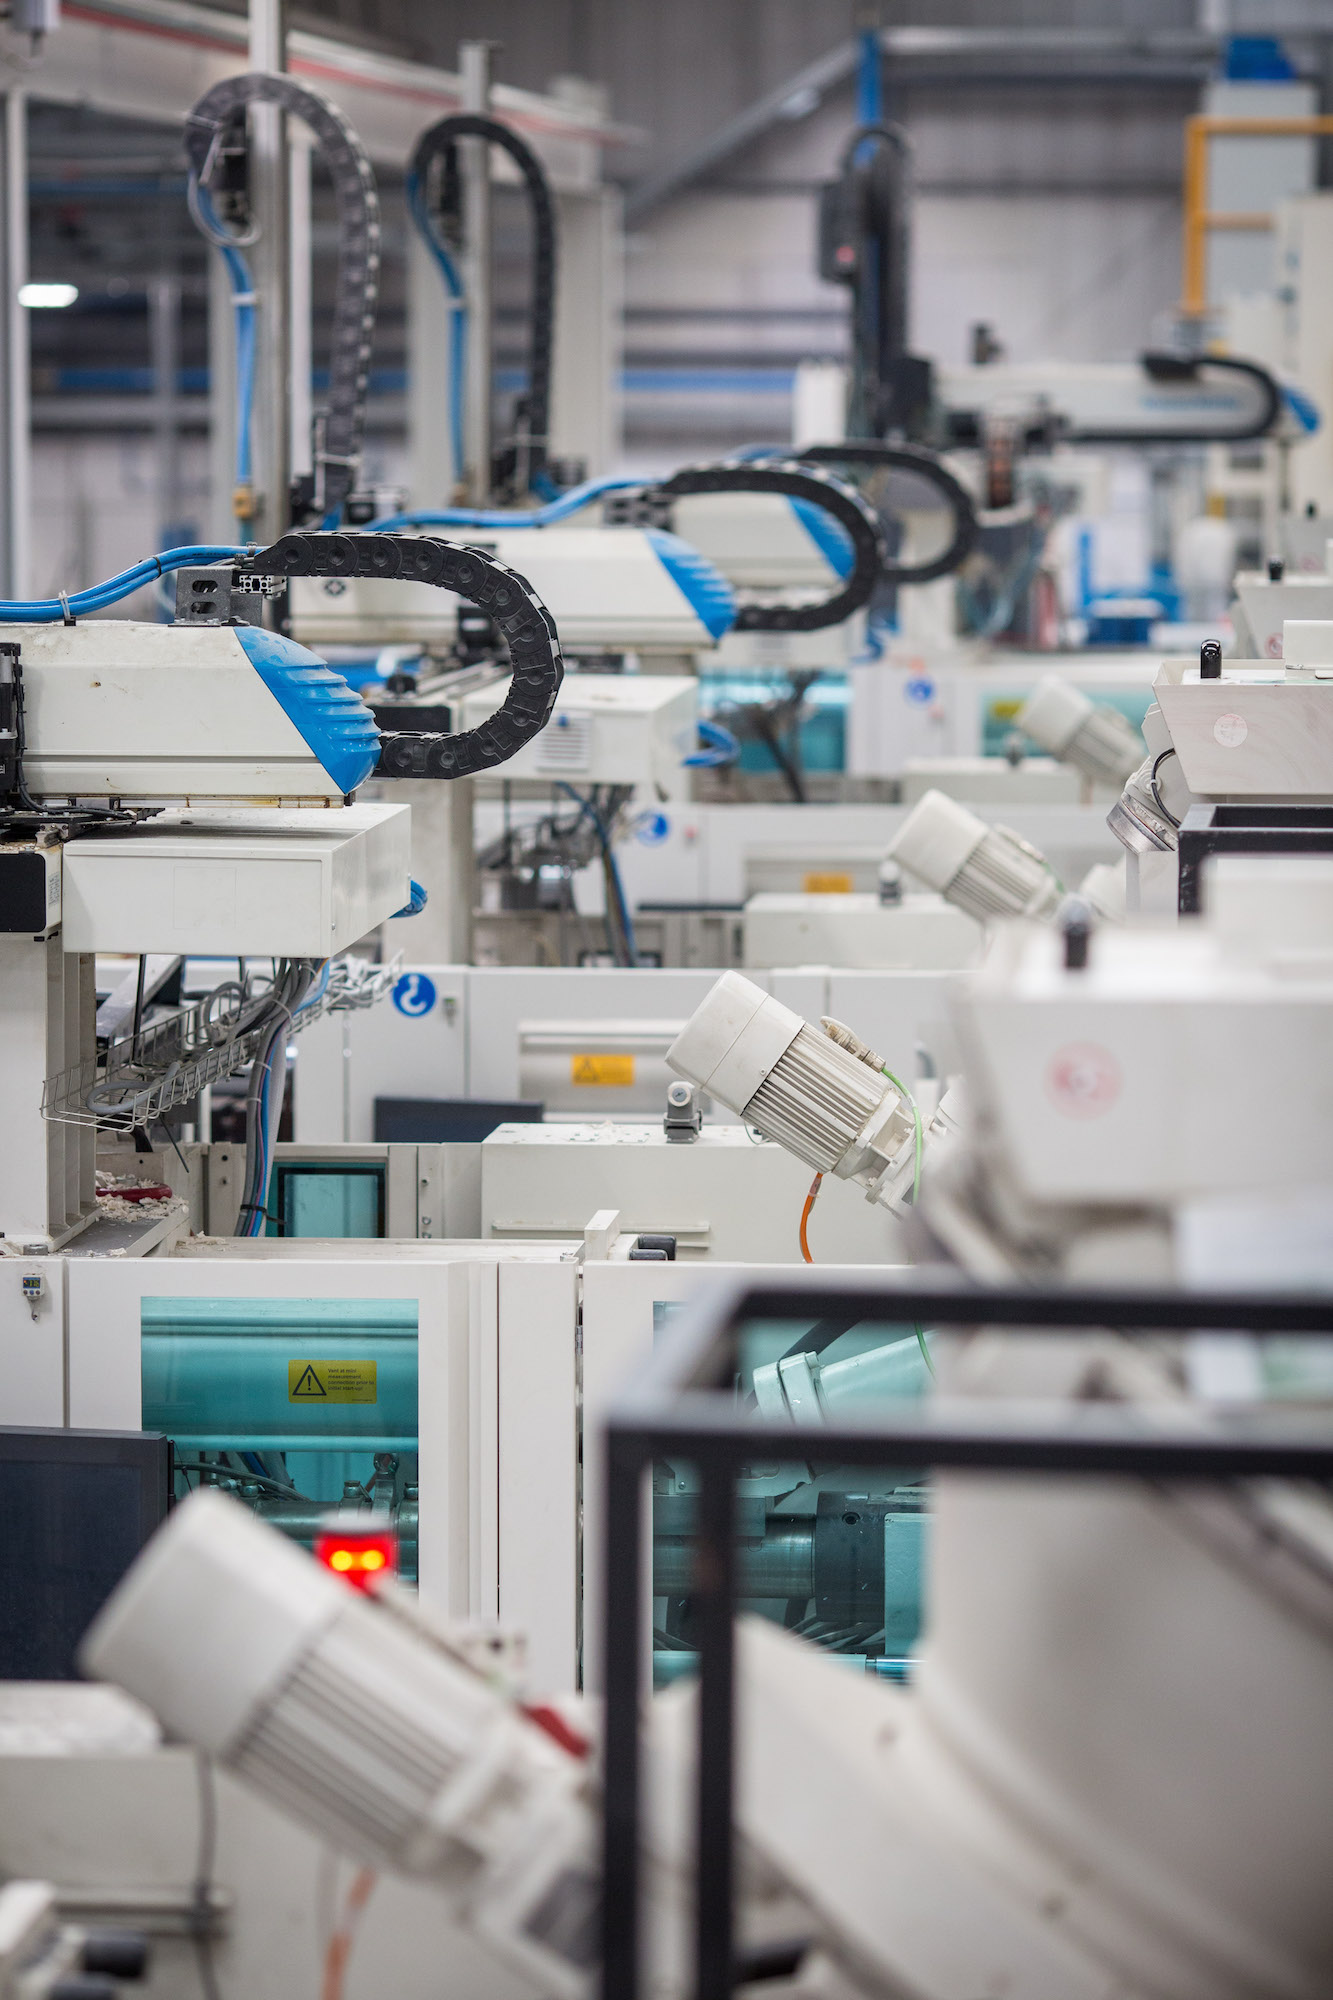 Thermoset Injection Compression Pick and Place Robots Full Automation copy.jpg